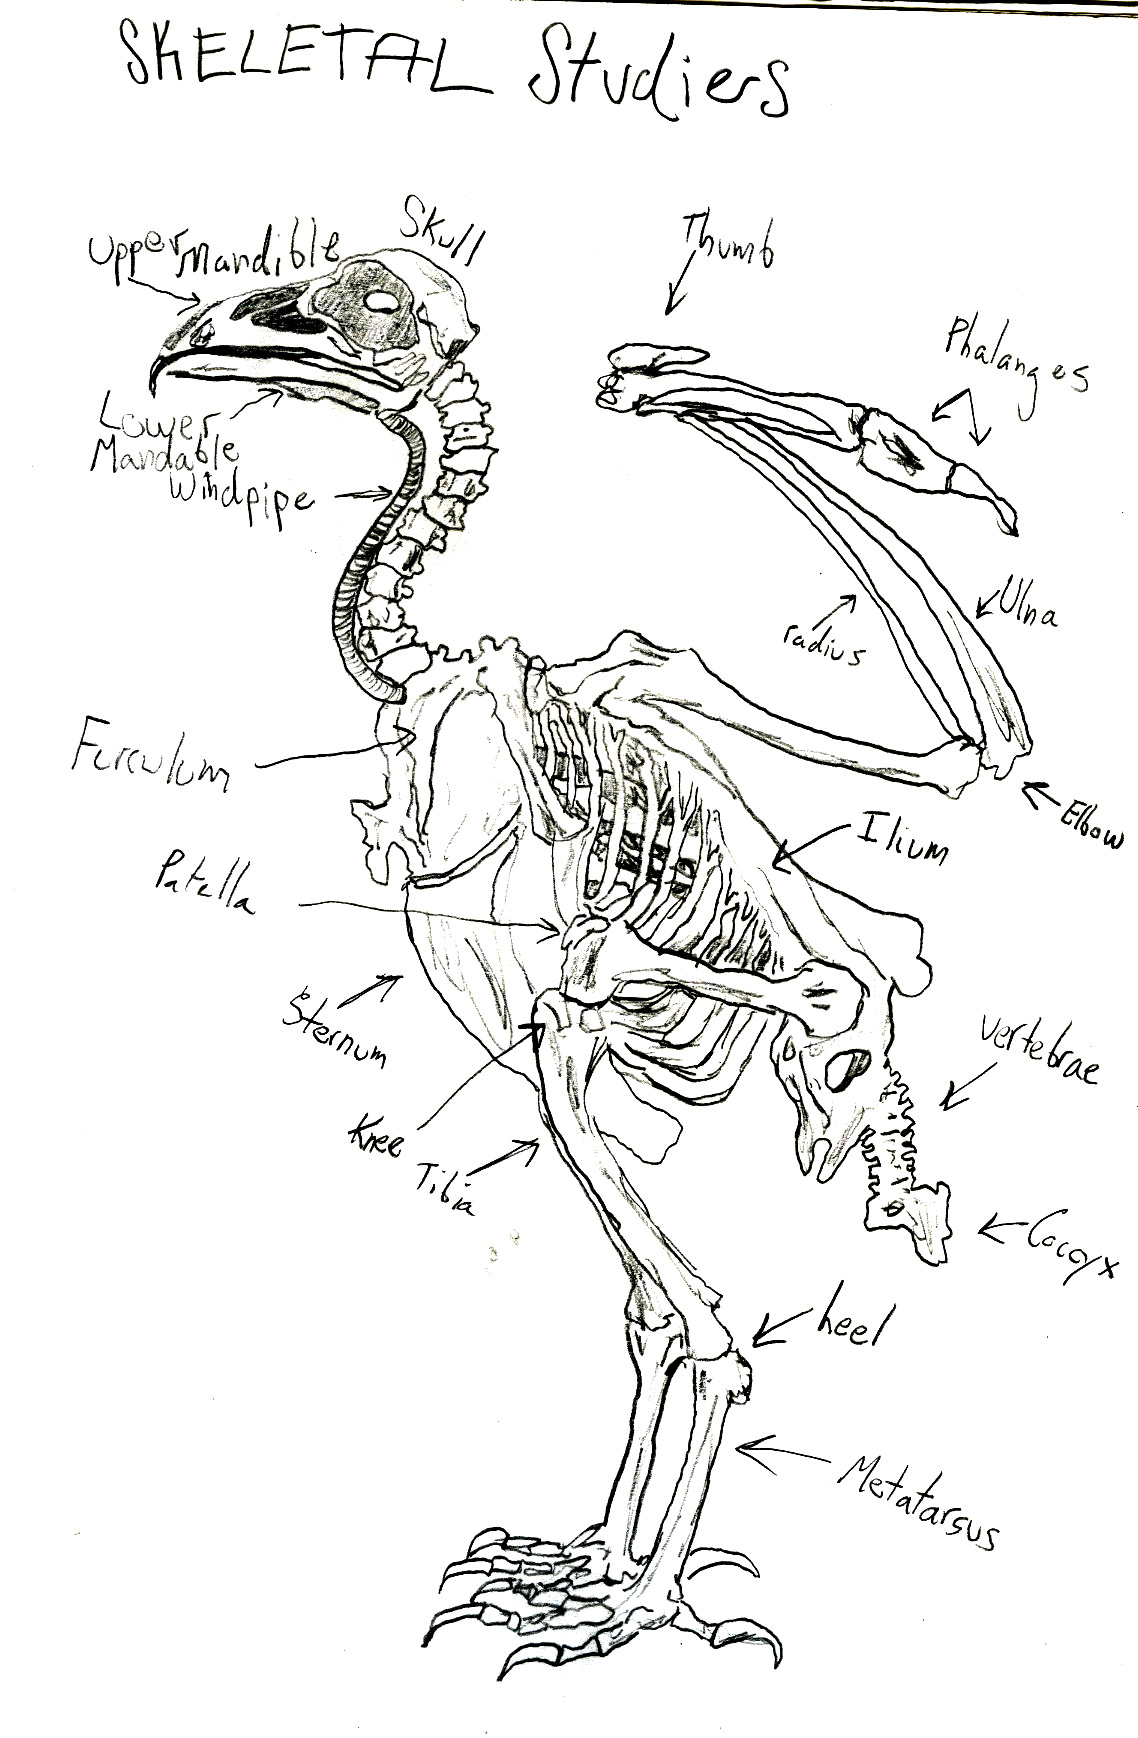 duck skeleton diagram 2 phase electric motor wiring labeled of a bald eagle cow